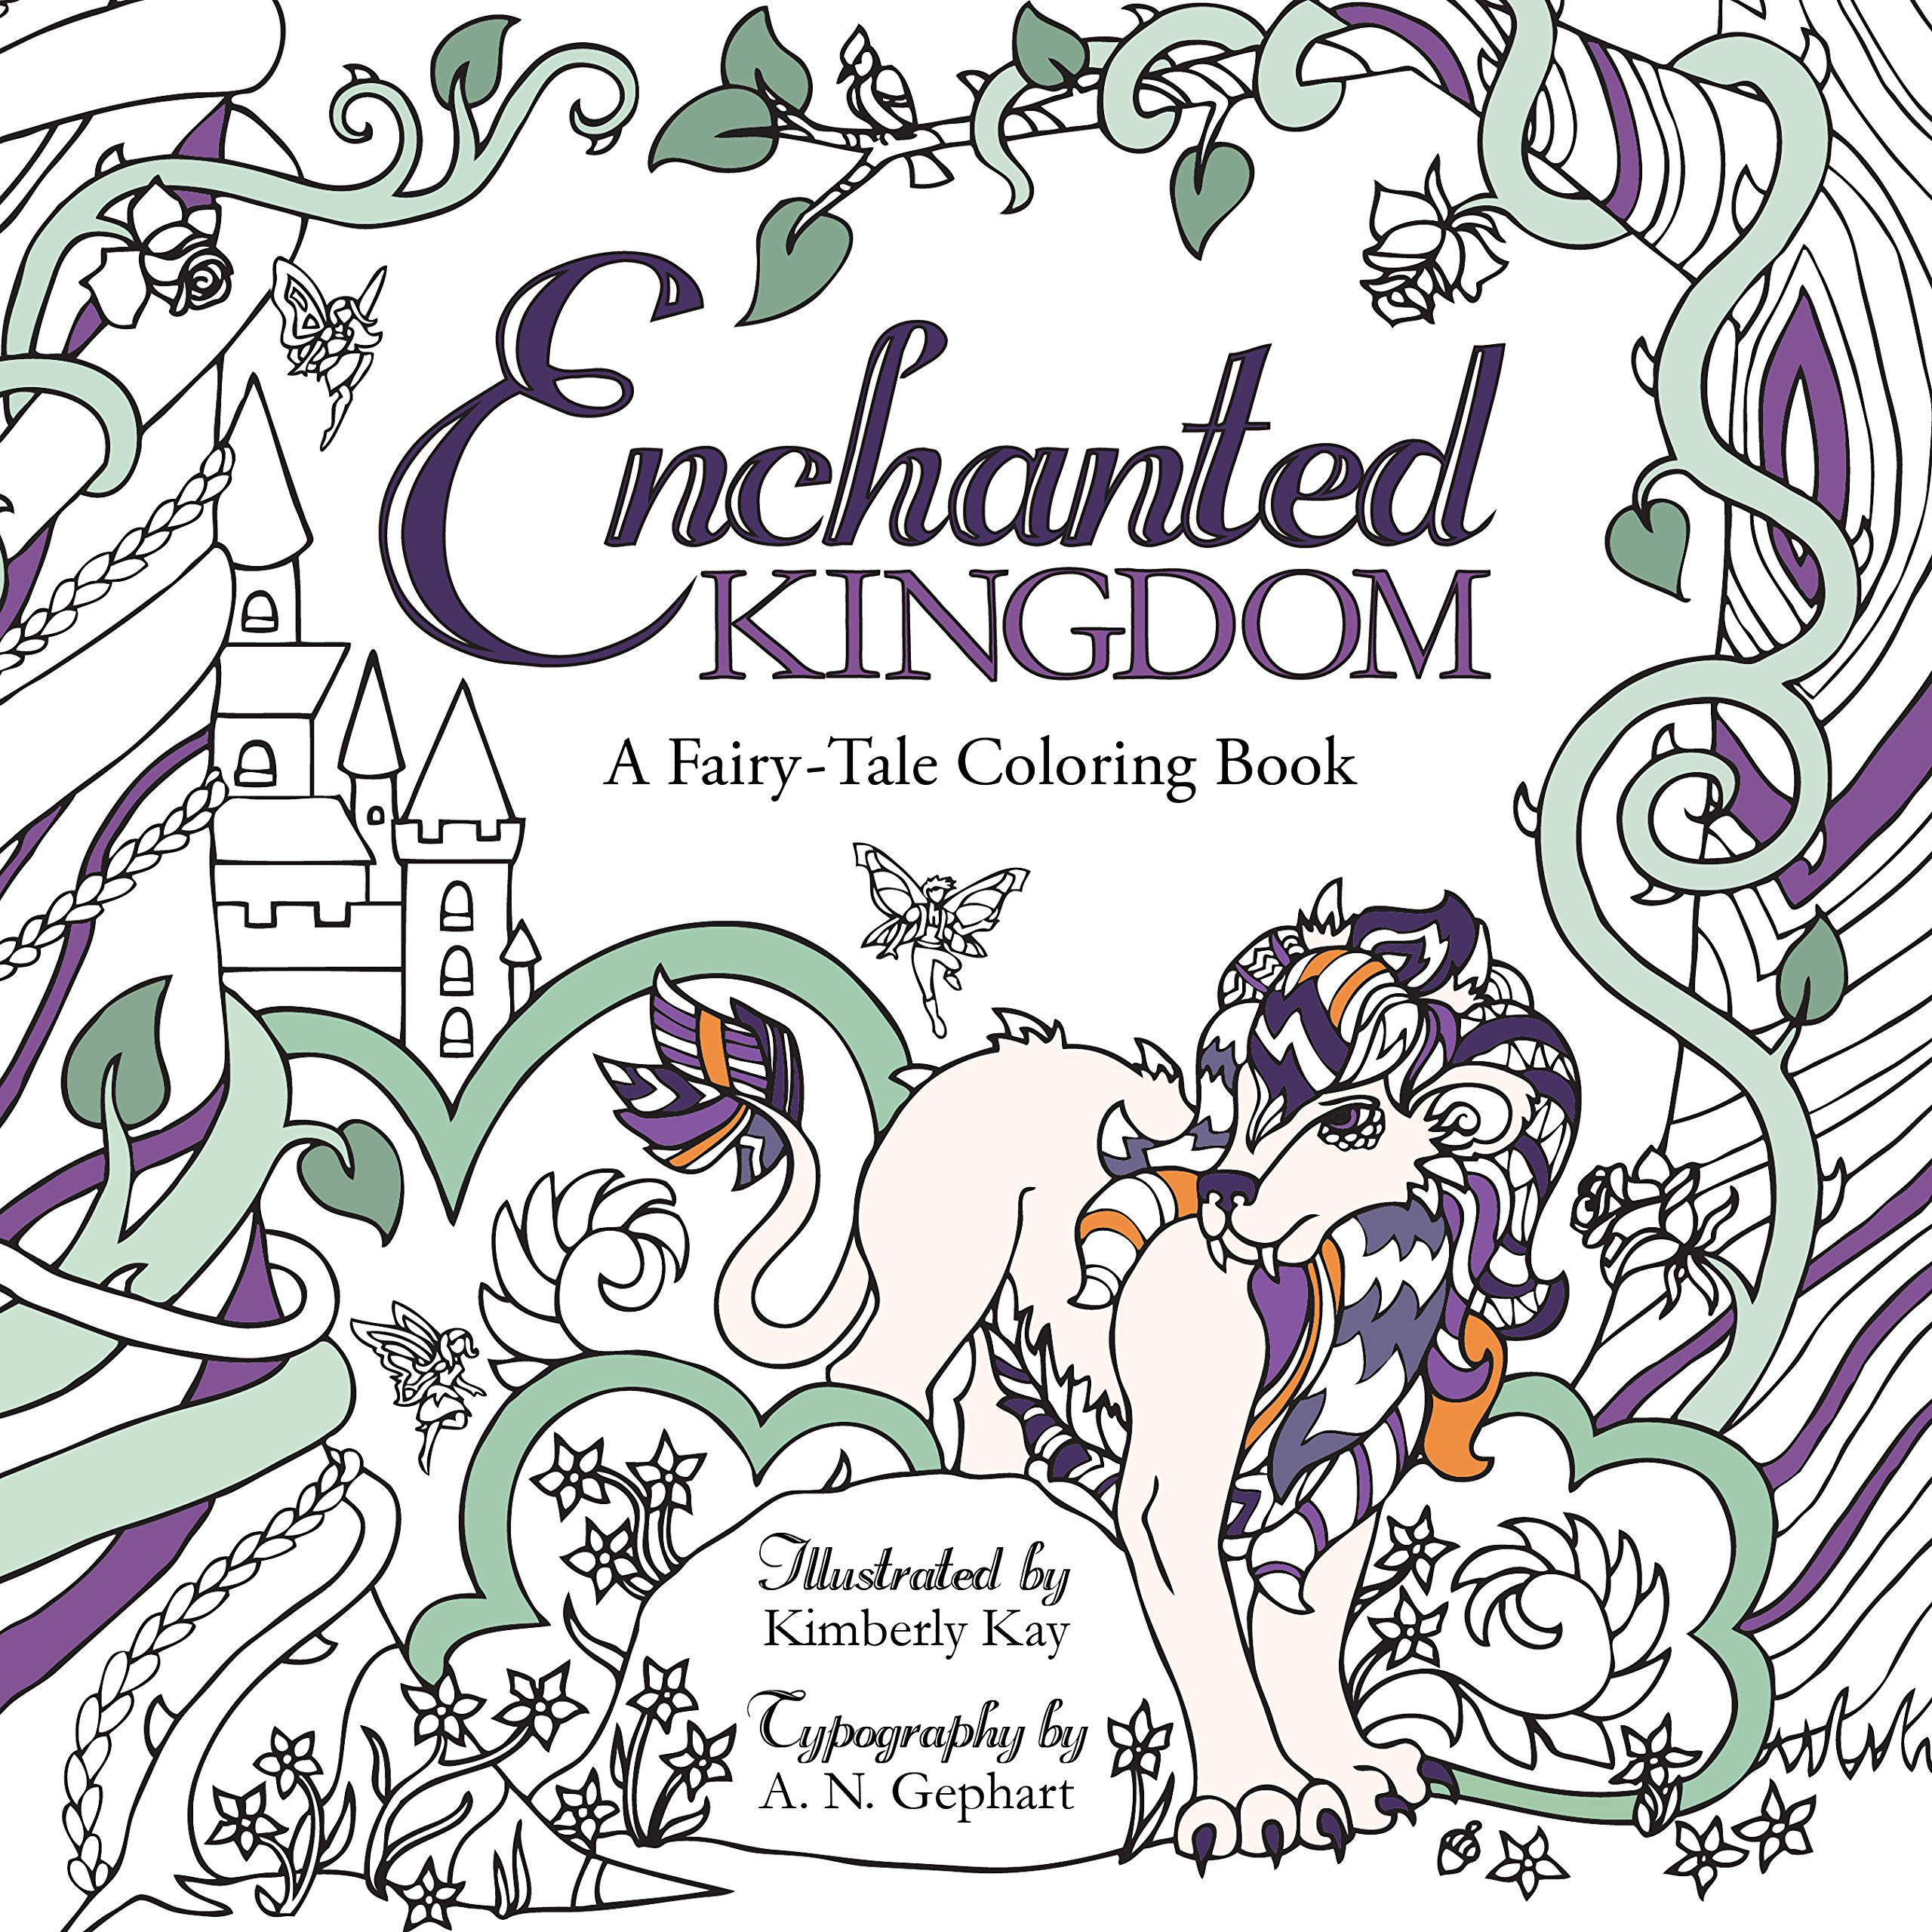 Amazon.com: Enchanted Kingdom: A Fairy-Tale Coloring Book ...